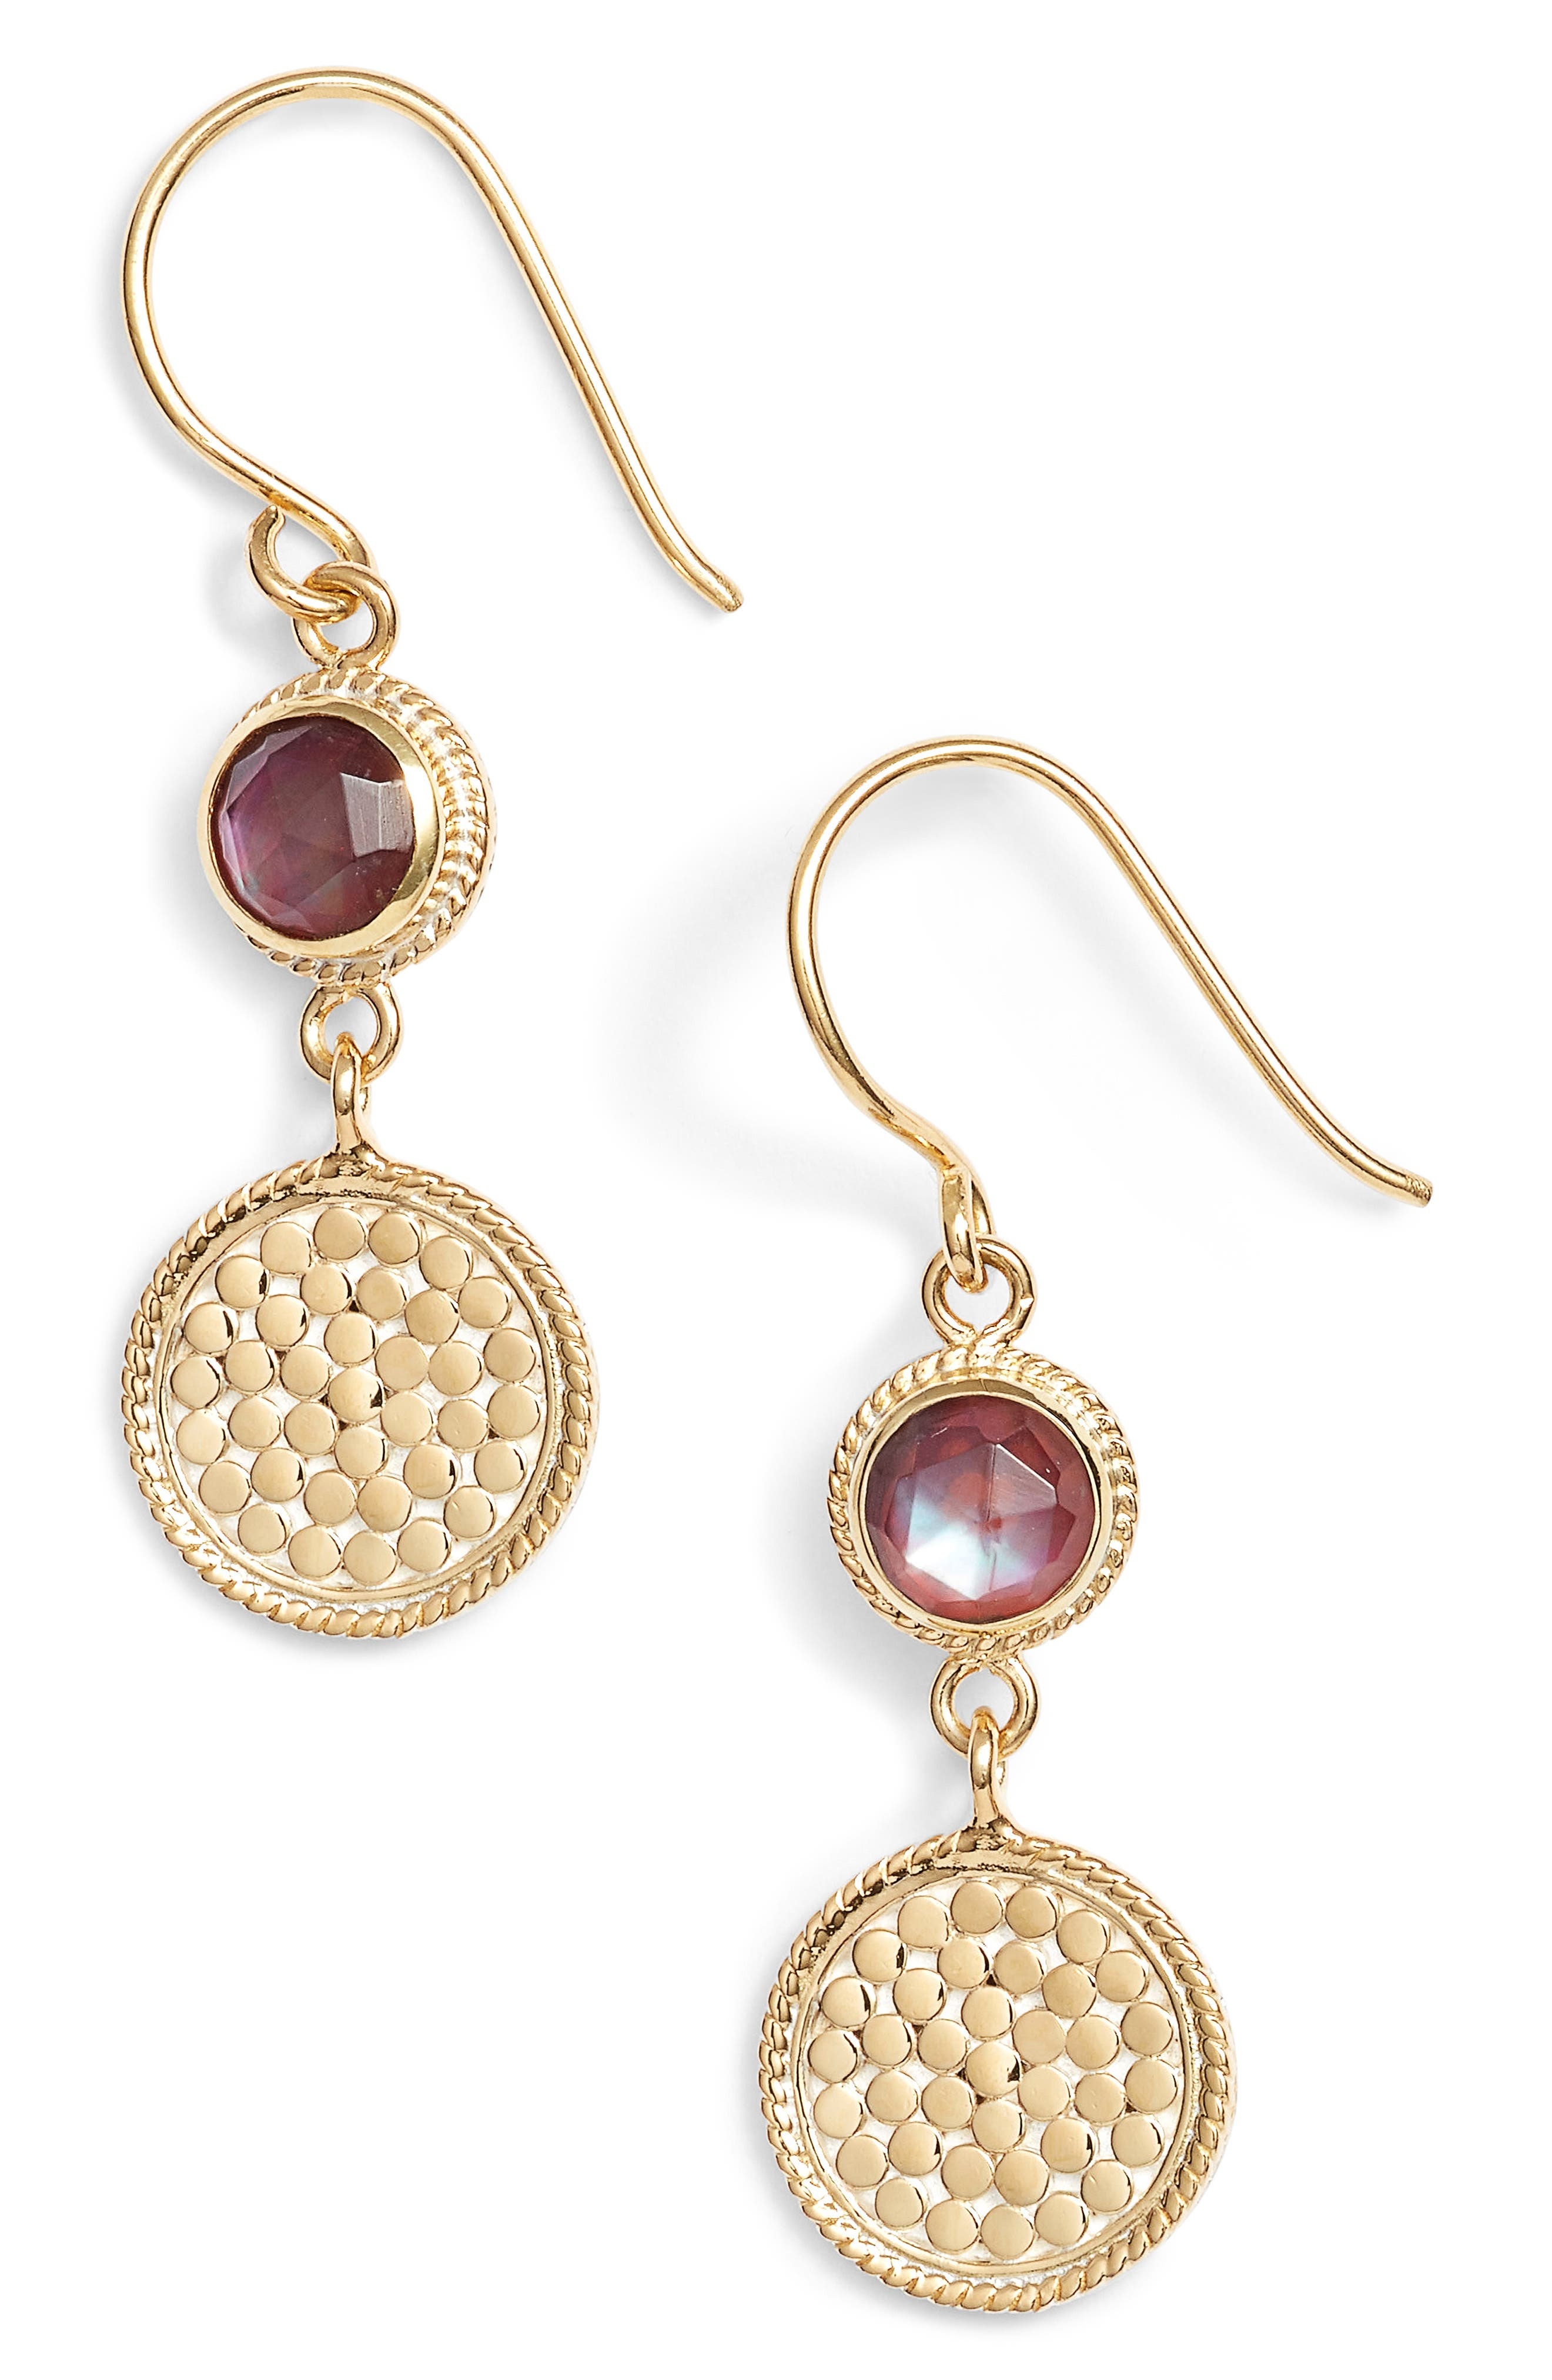 Main Image - Anna Beck Semiprecious Stone Double Drop Earrings